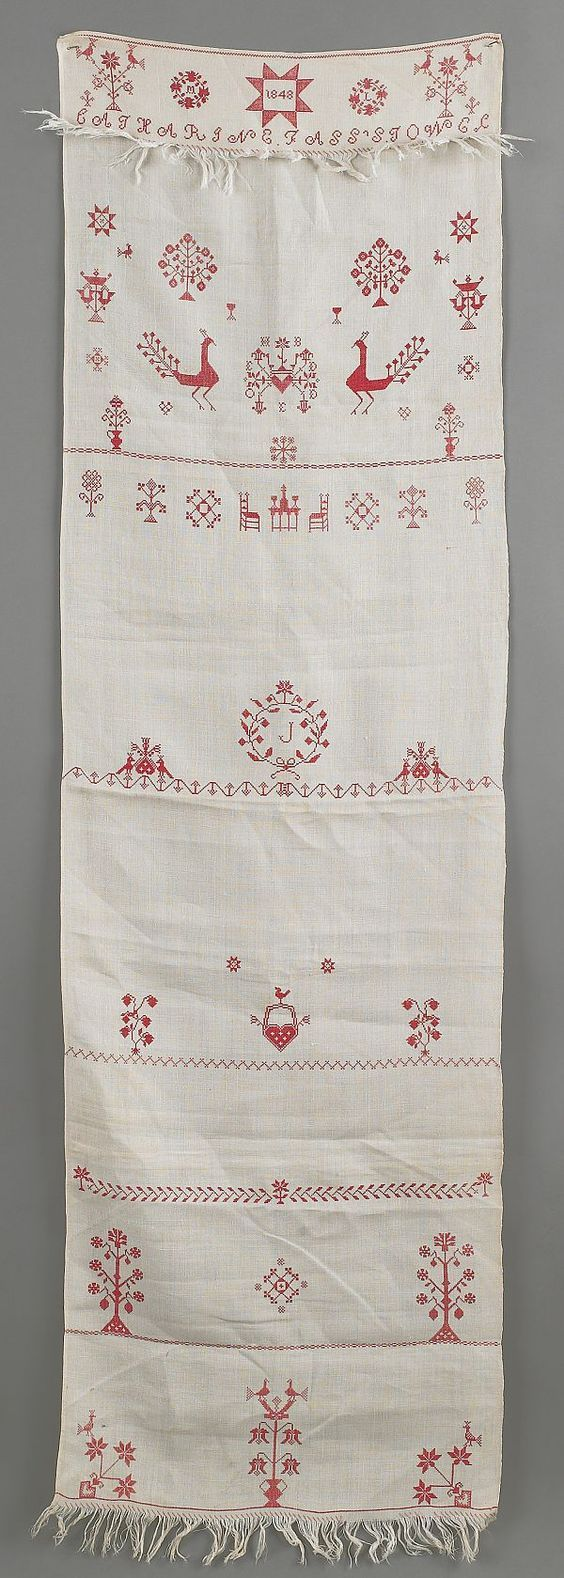 "Realized Price: $ 948    Pennsylvania silk embroidered show towel, dated 1848, inscribed Catherine Fass Stowe, 60"" x 17"".:"